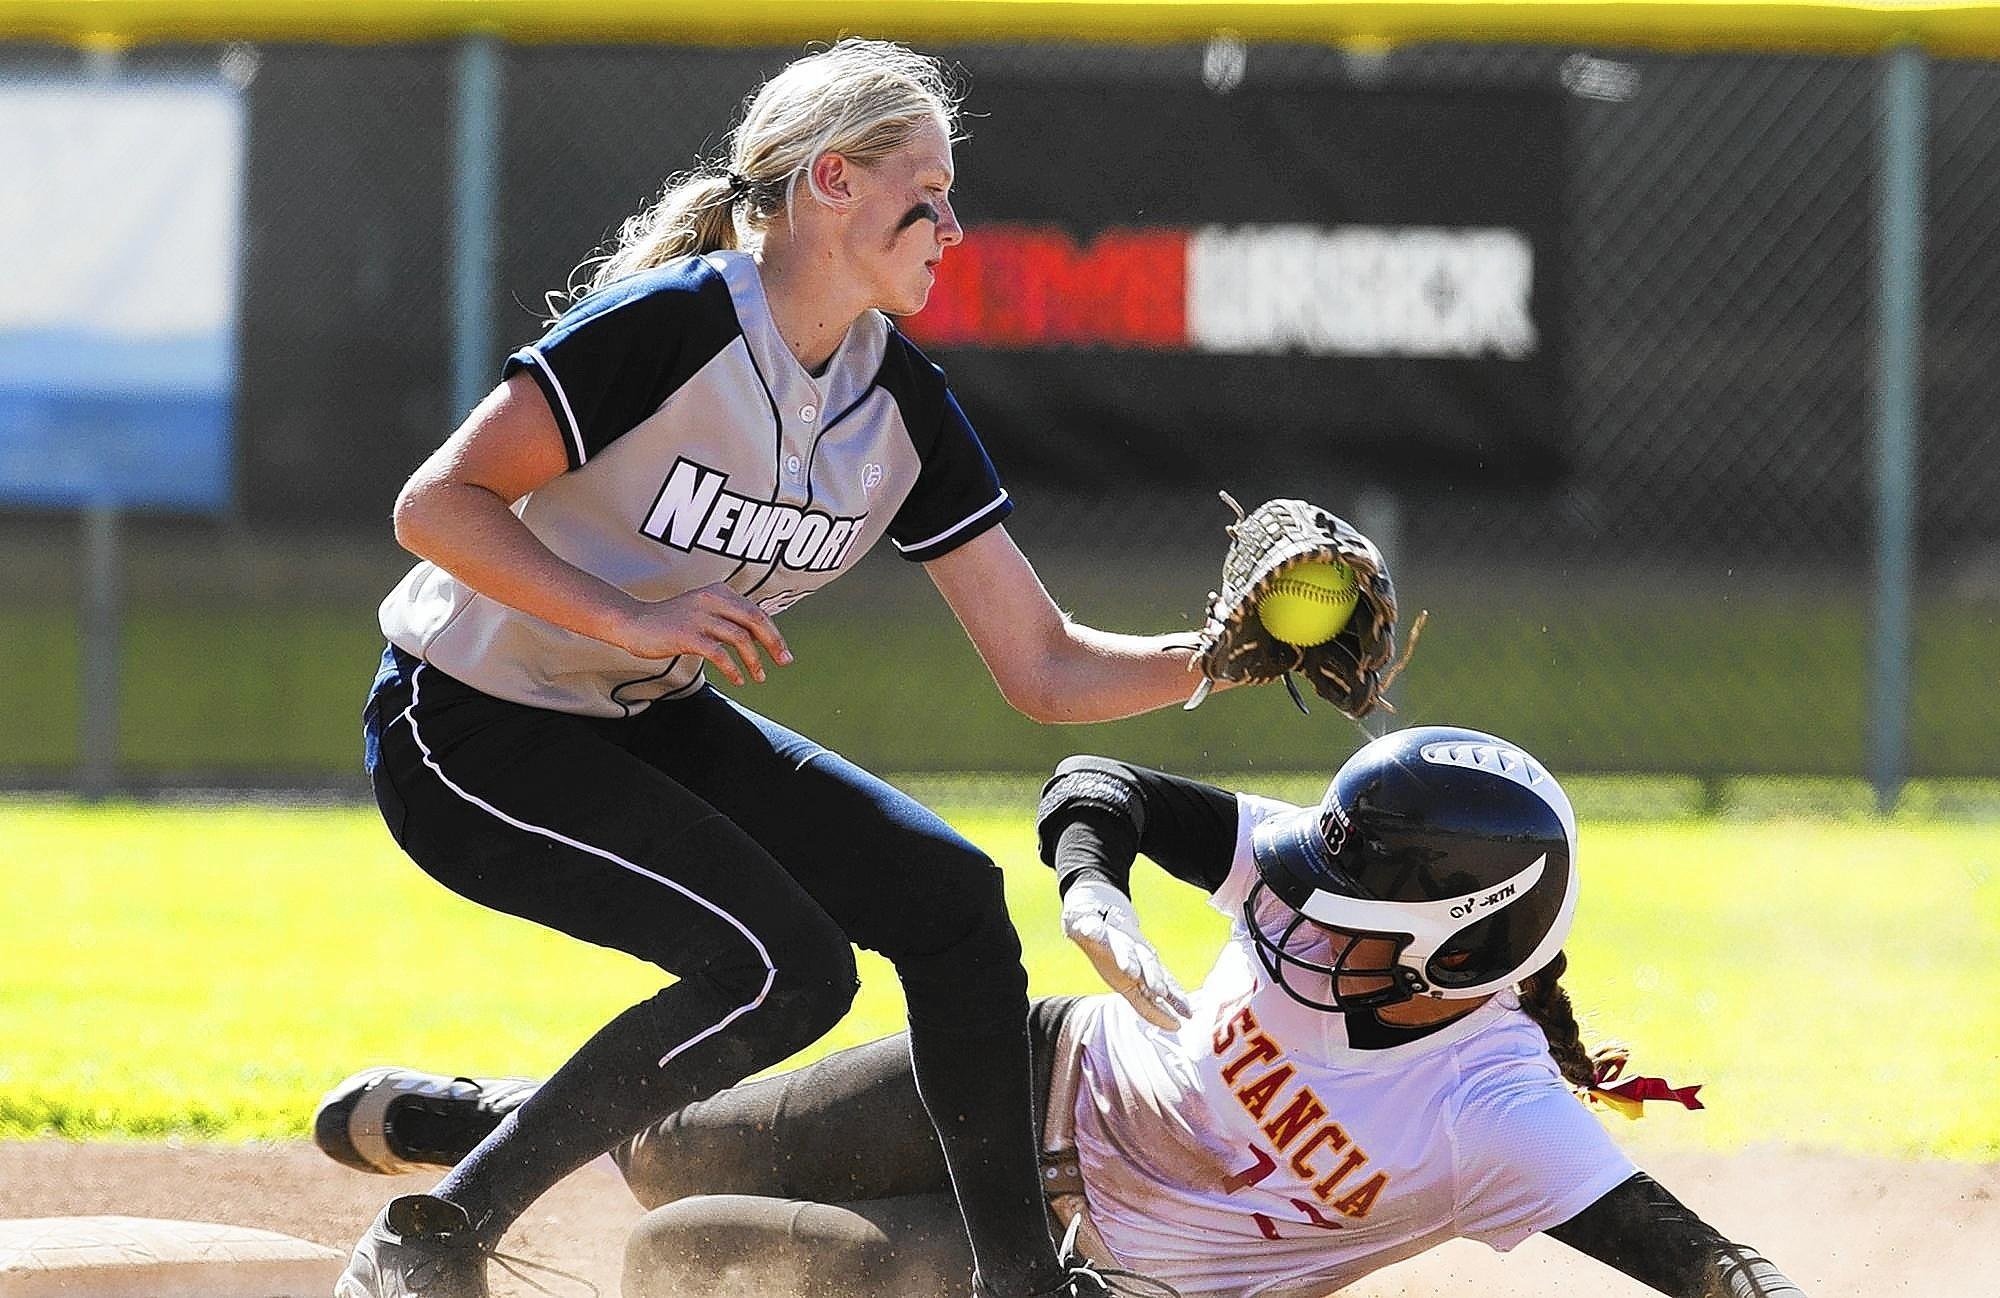 Estancia High's Gianna Guyot, right, slides under the tag of Newport Harbor's Diana Surber during a nonleague game on Thursday. (Scott Smeltzer - Daily Pilot)